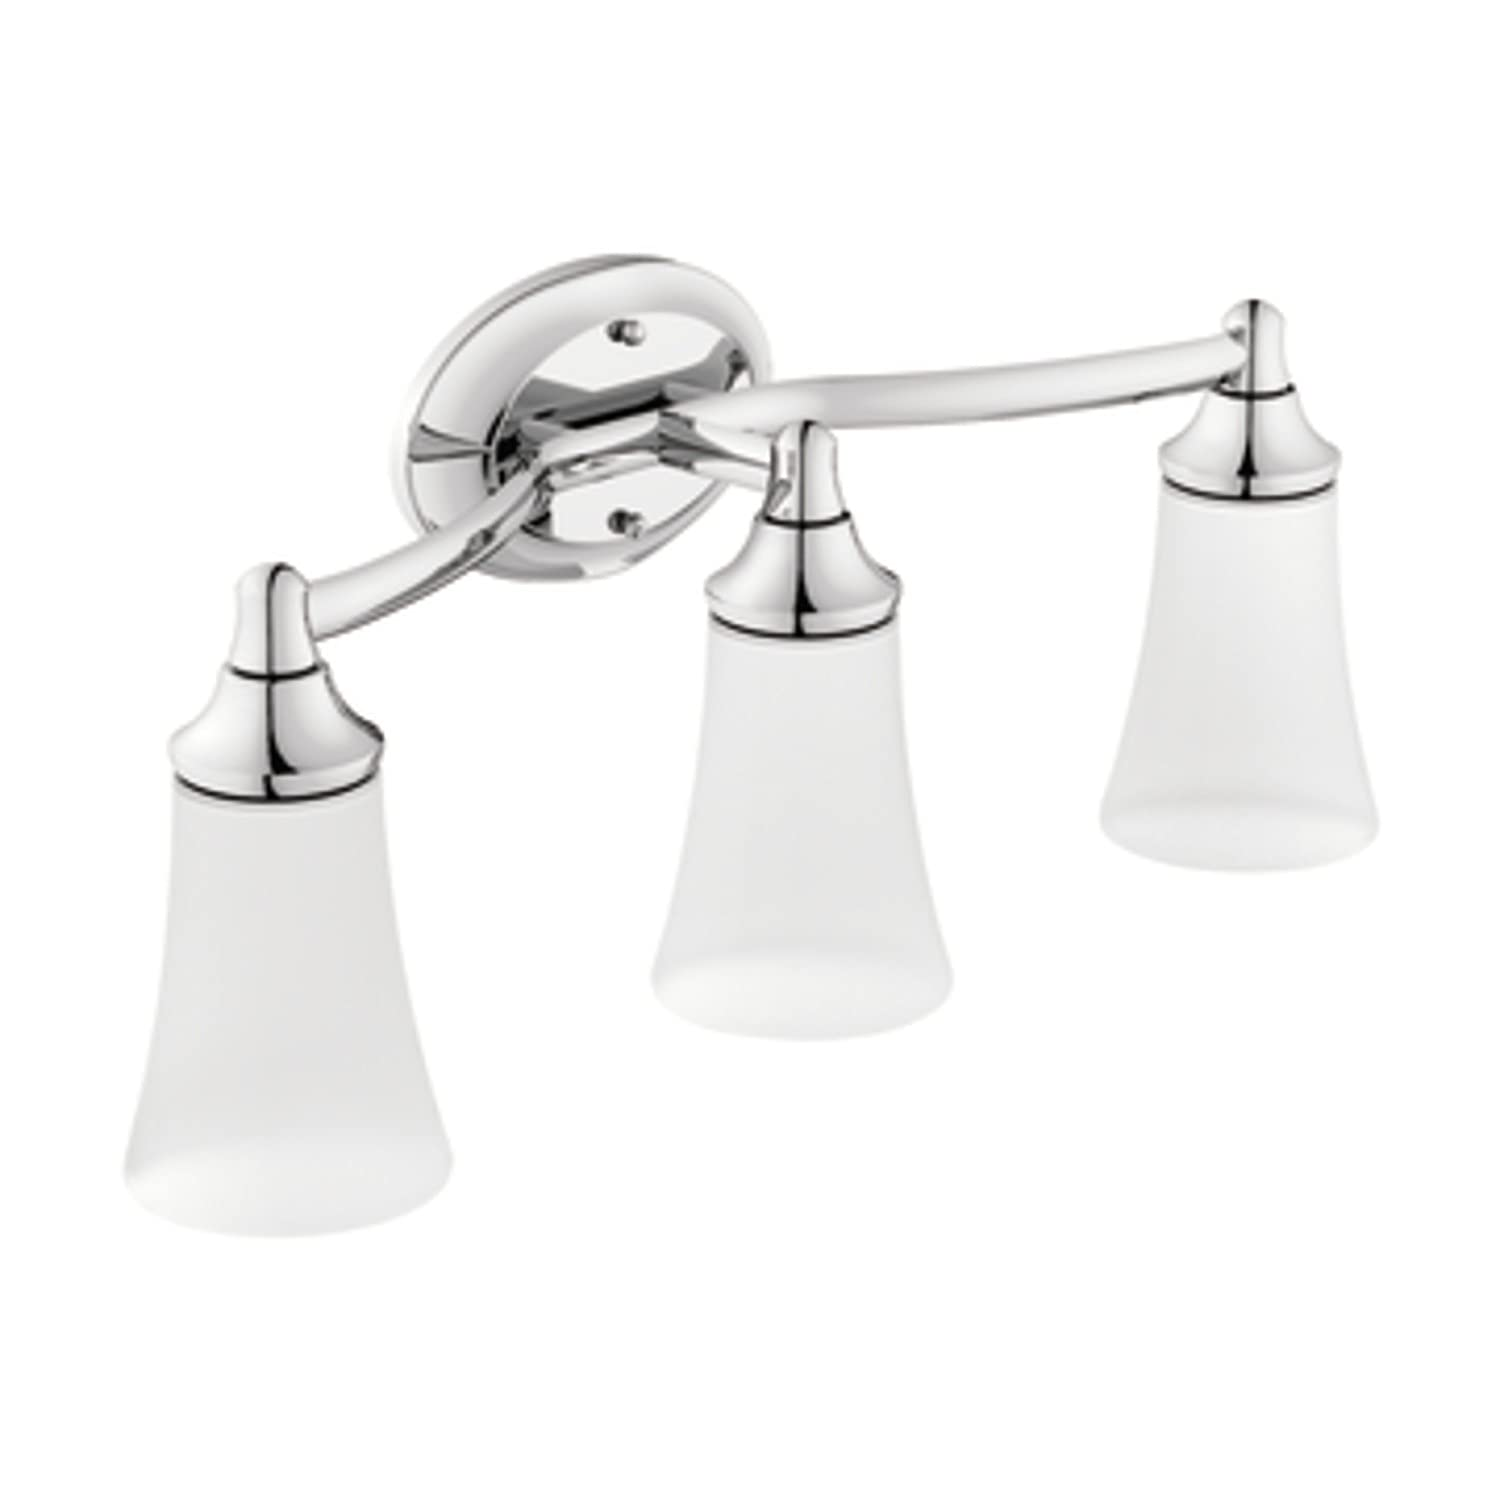 Moen YB2863CH Eva Bath Lighting Chrome - Bathroom Hardware - Amazon.com  sc 1 st  Amazon.com : svl lighting - azcodes.com